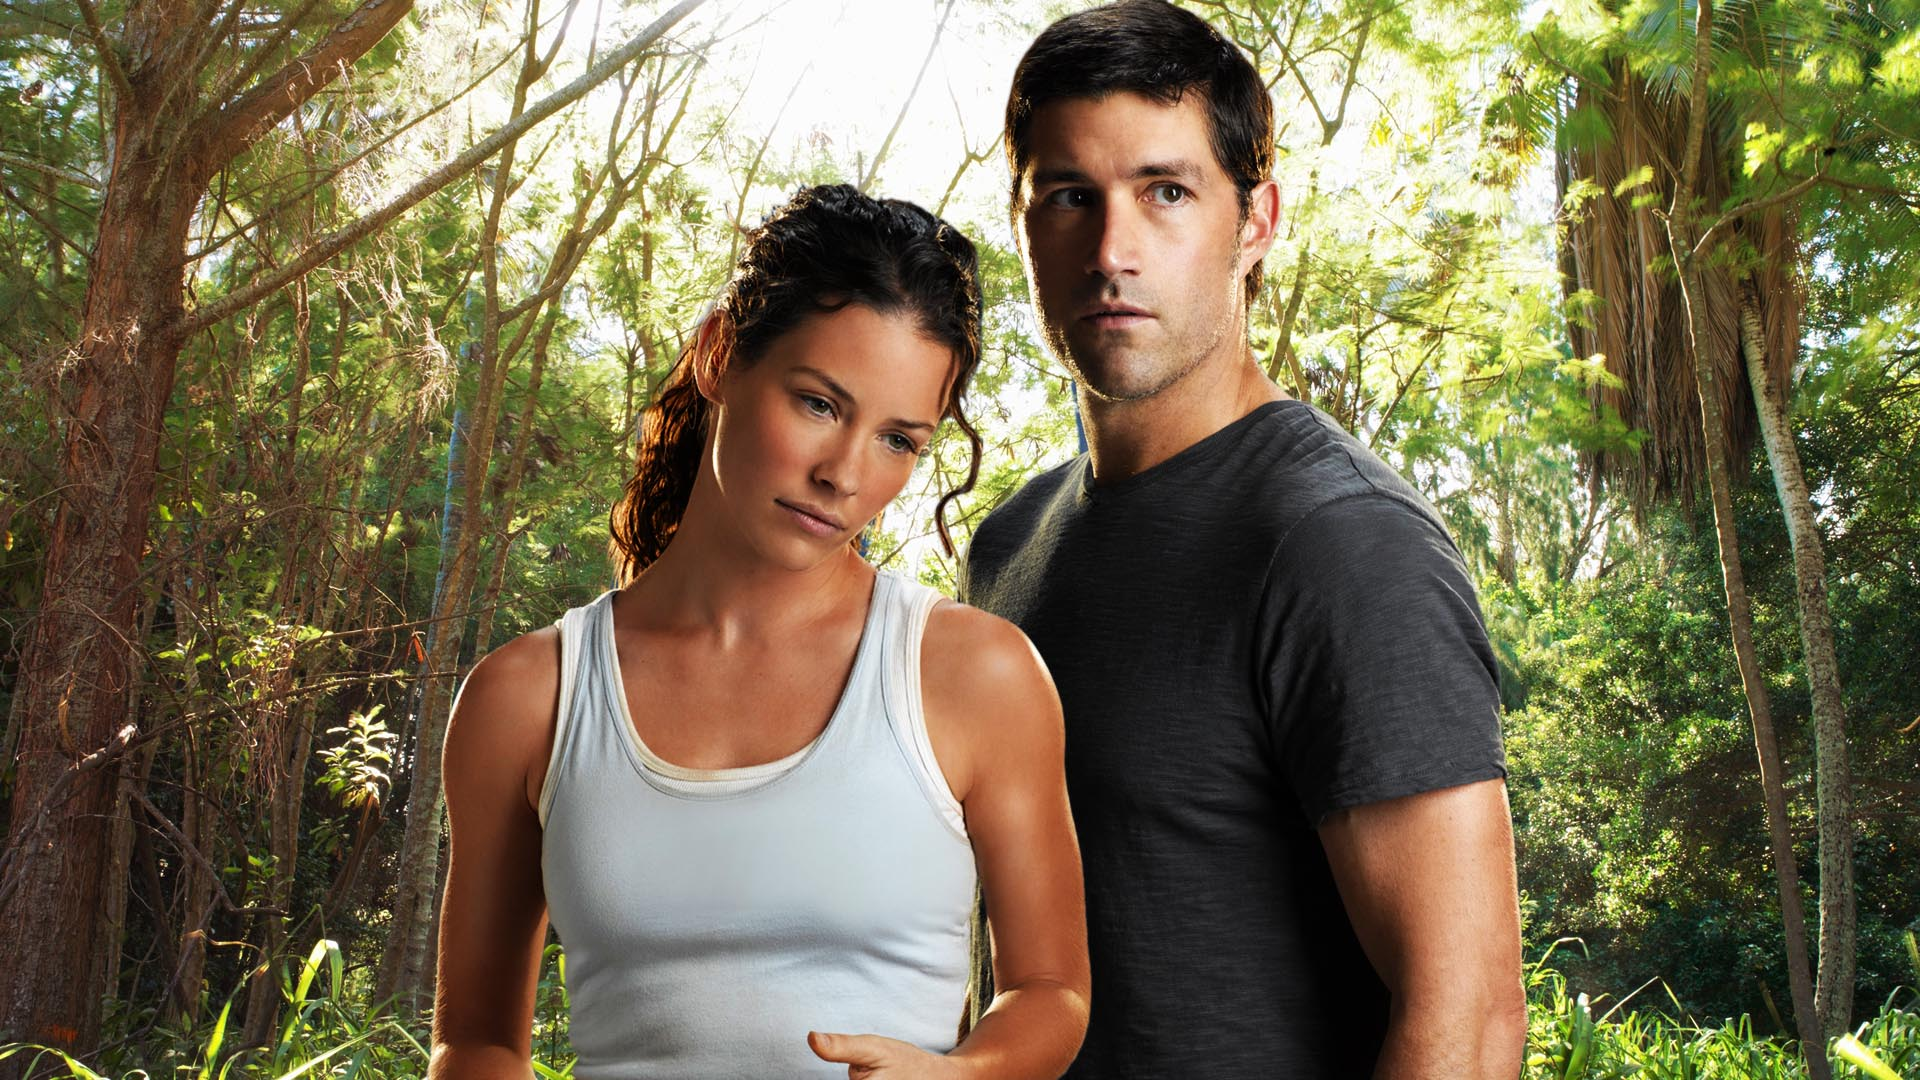 Jack and Kate - Lost Wallpaper (37561516) - Fanpop